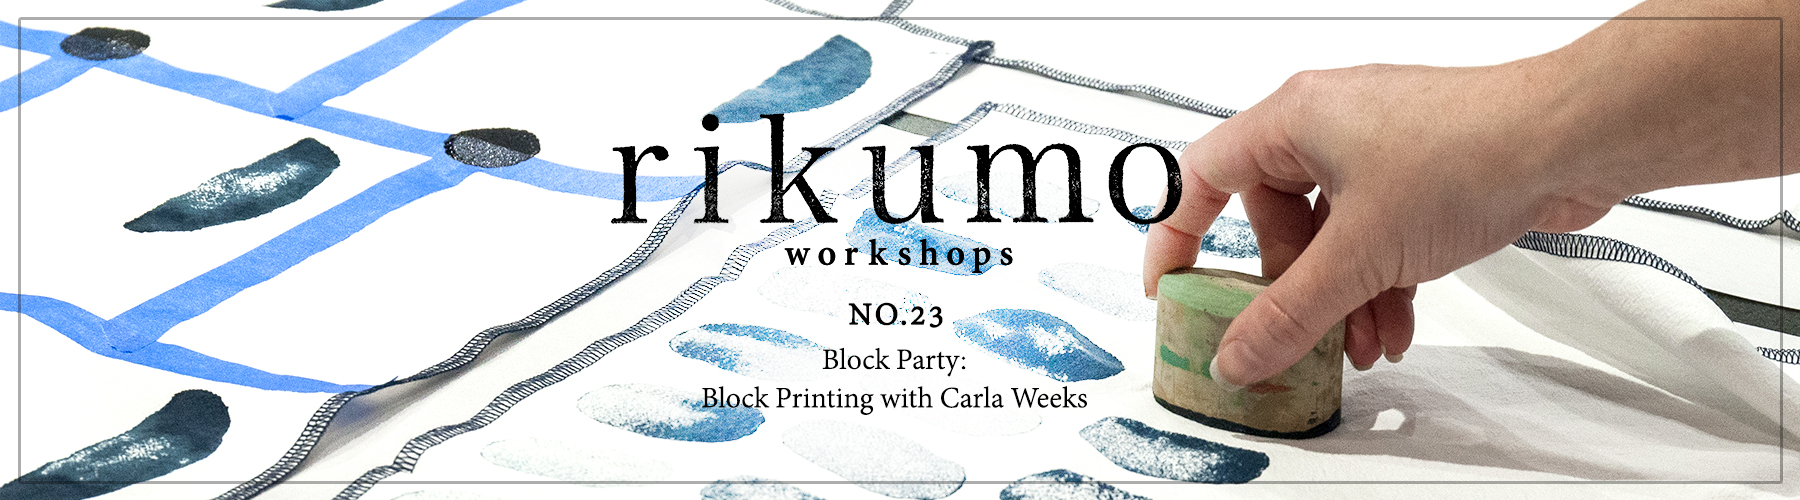 workshop-banner.jpg